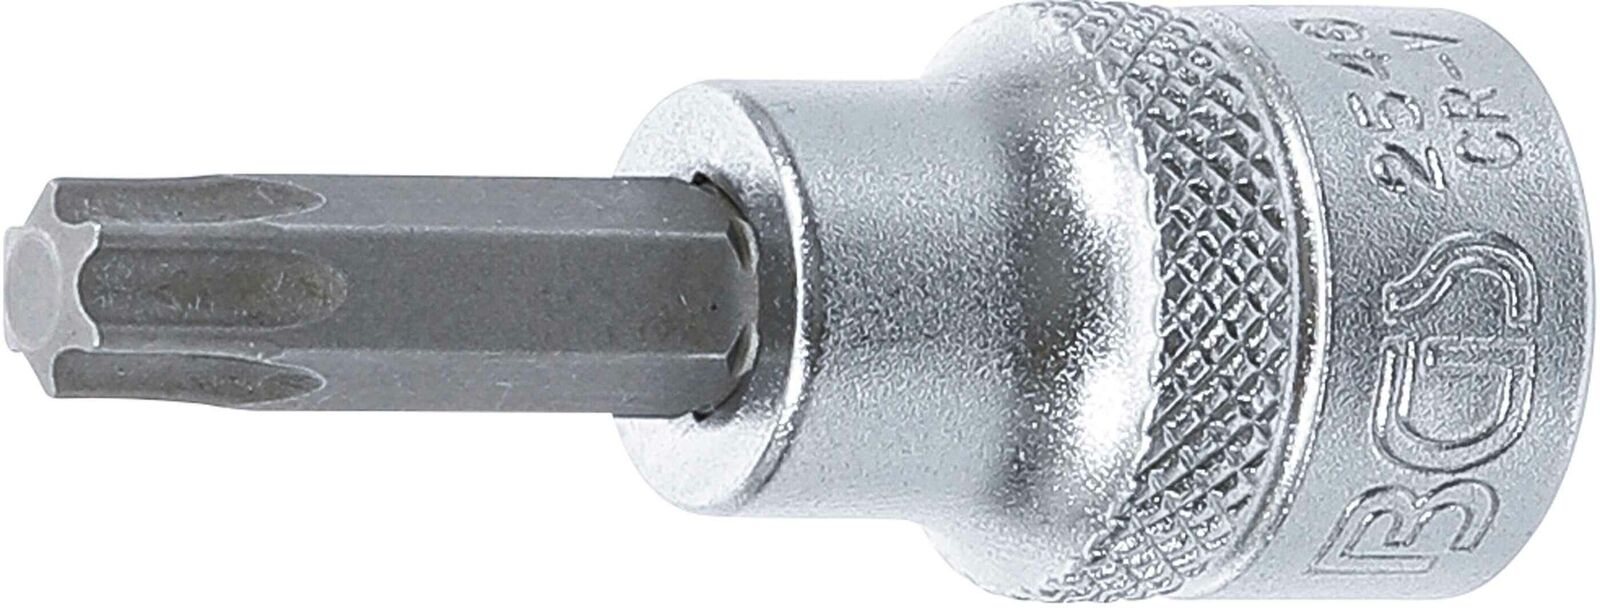 Tip To Socket Torx T40 For Wrench Ratchet Square 3/8